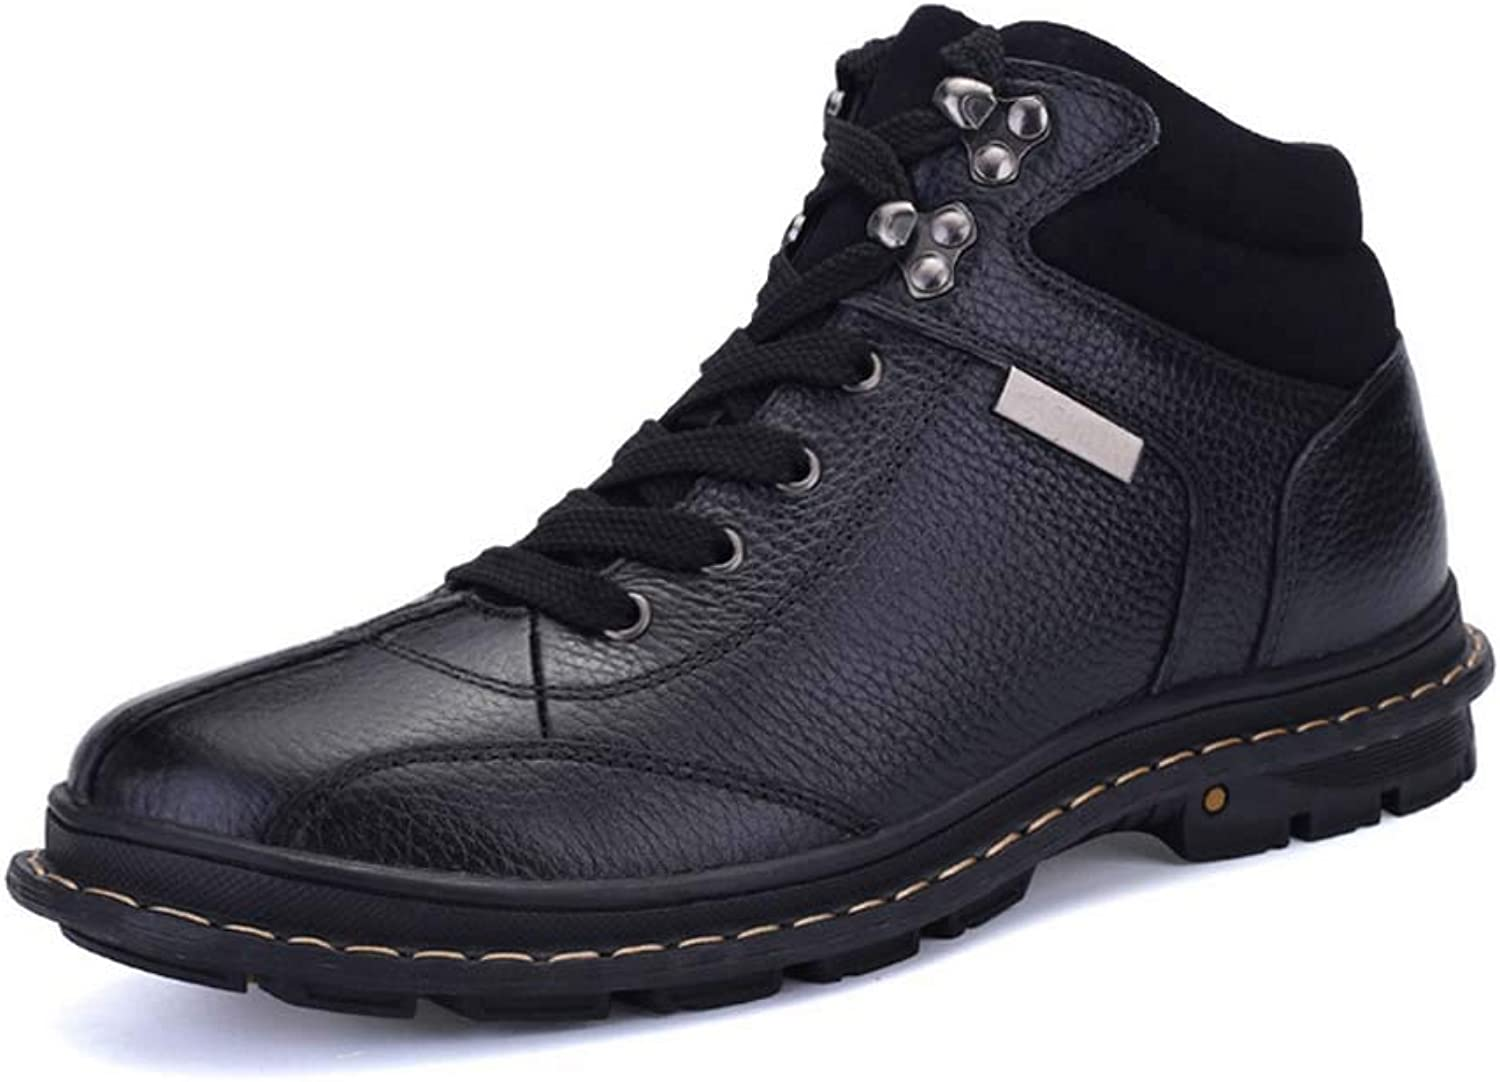 Men Outdoor Walking Boots Autumn Winter New Leather Boots High Top Martin Boots Large Size